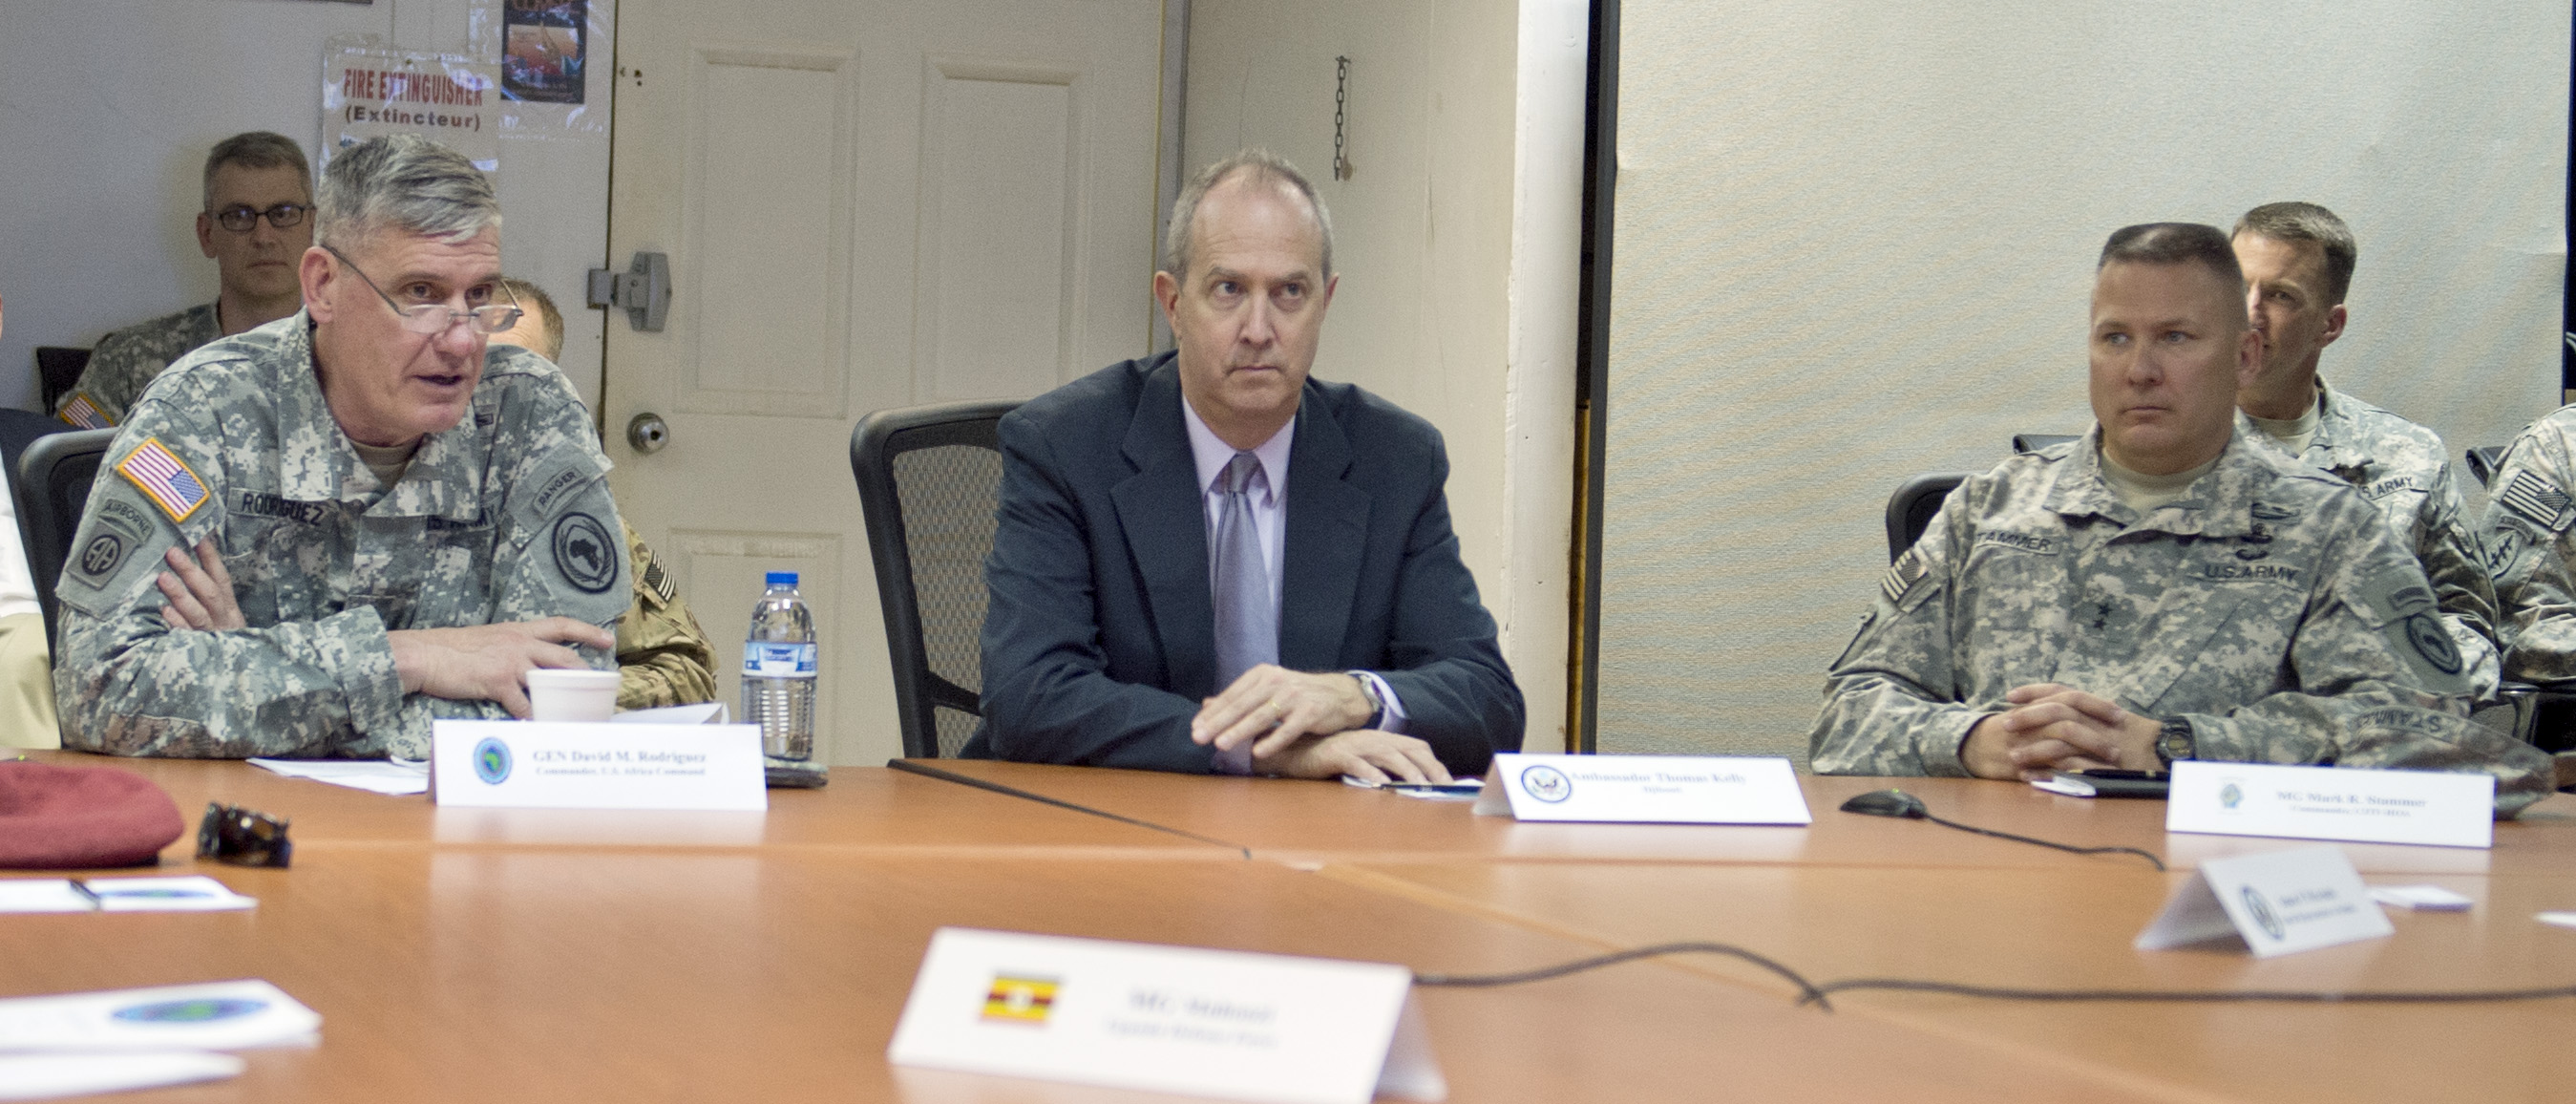 From left, U.S. Army General David Rodriguez, U.S. Africa Command commander, speaks with Ambassador Tom Kelly, U.S. Ambassador of Djibouti, and U.S. Army Maj. Gen. Mark Stammer, Combined Joint Task Force-Horn of Africa commanding general, during the U.S. Africa Command East Africa Joint Interagency, Intergovernmental, and Multinational conference at Camp Lemonnier, Djibouti, April 14, 2015.  The event was a forum for regional U.S. Embassy and East African partner nation representatives to gain greater insight into each other's goals and objectives within the East Africa region. (U.S. Air Force photo by Staff Sgt. Kevin Iinuma)